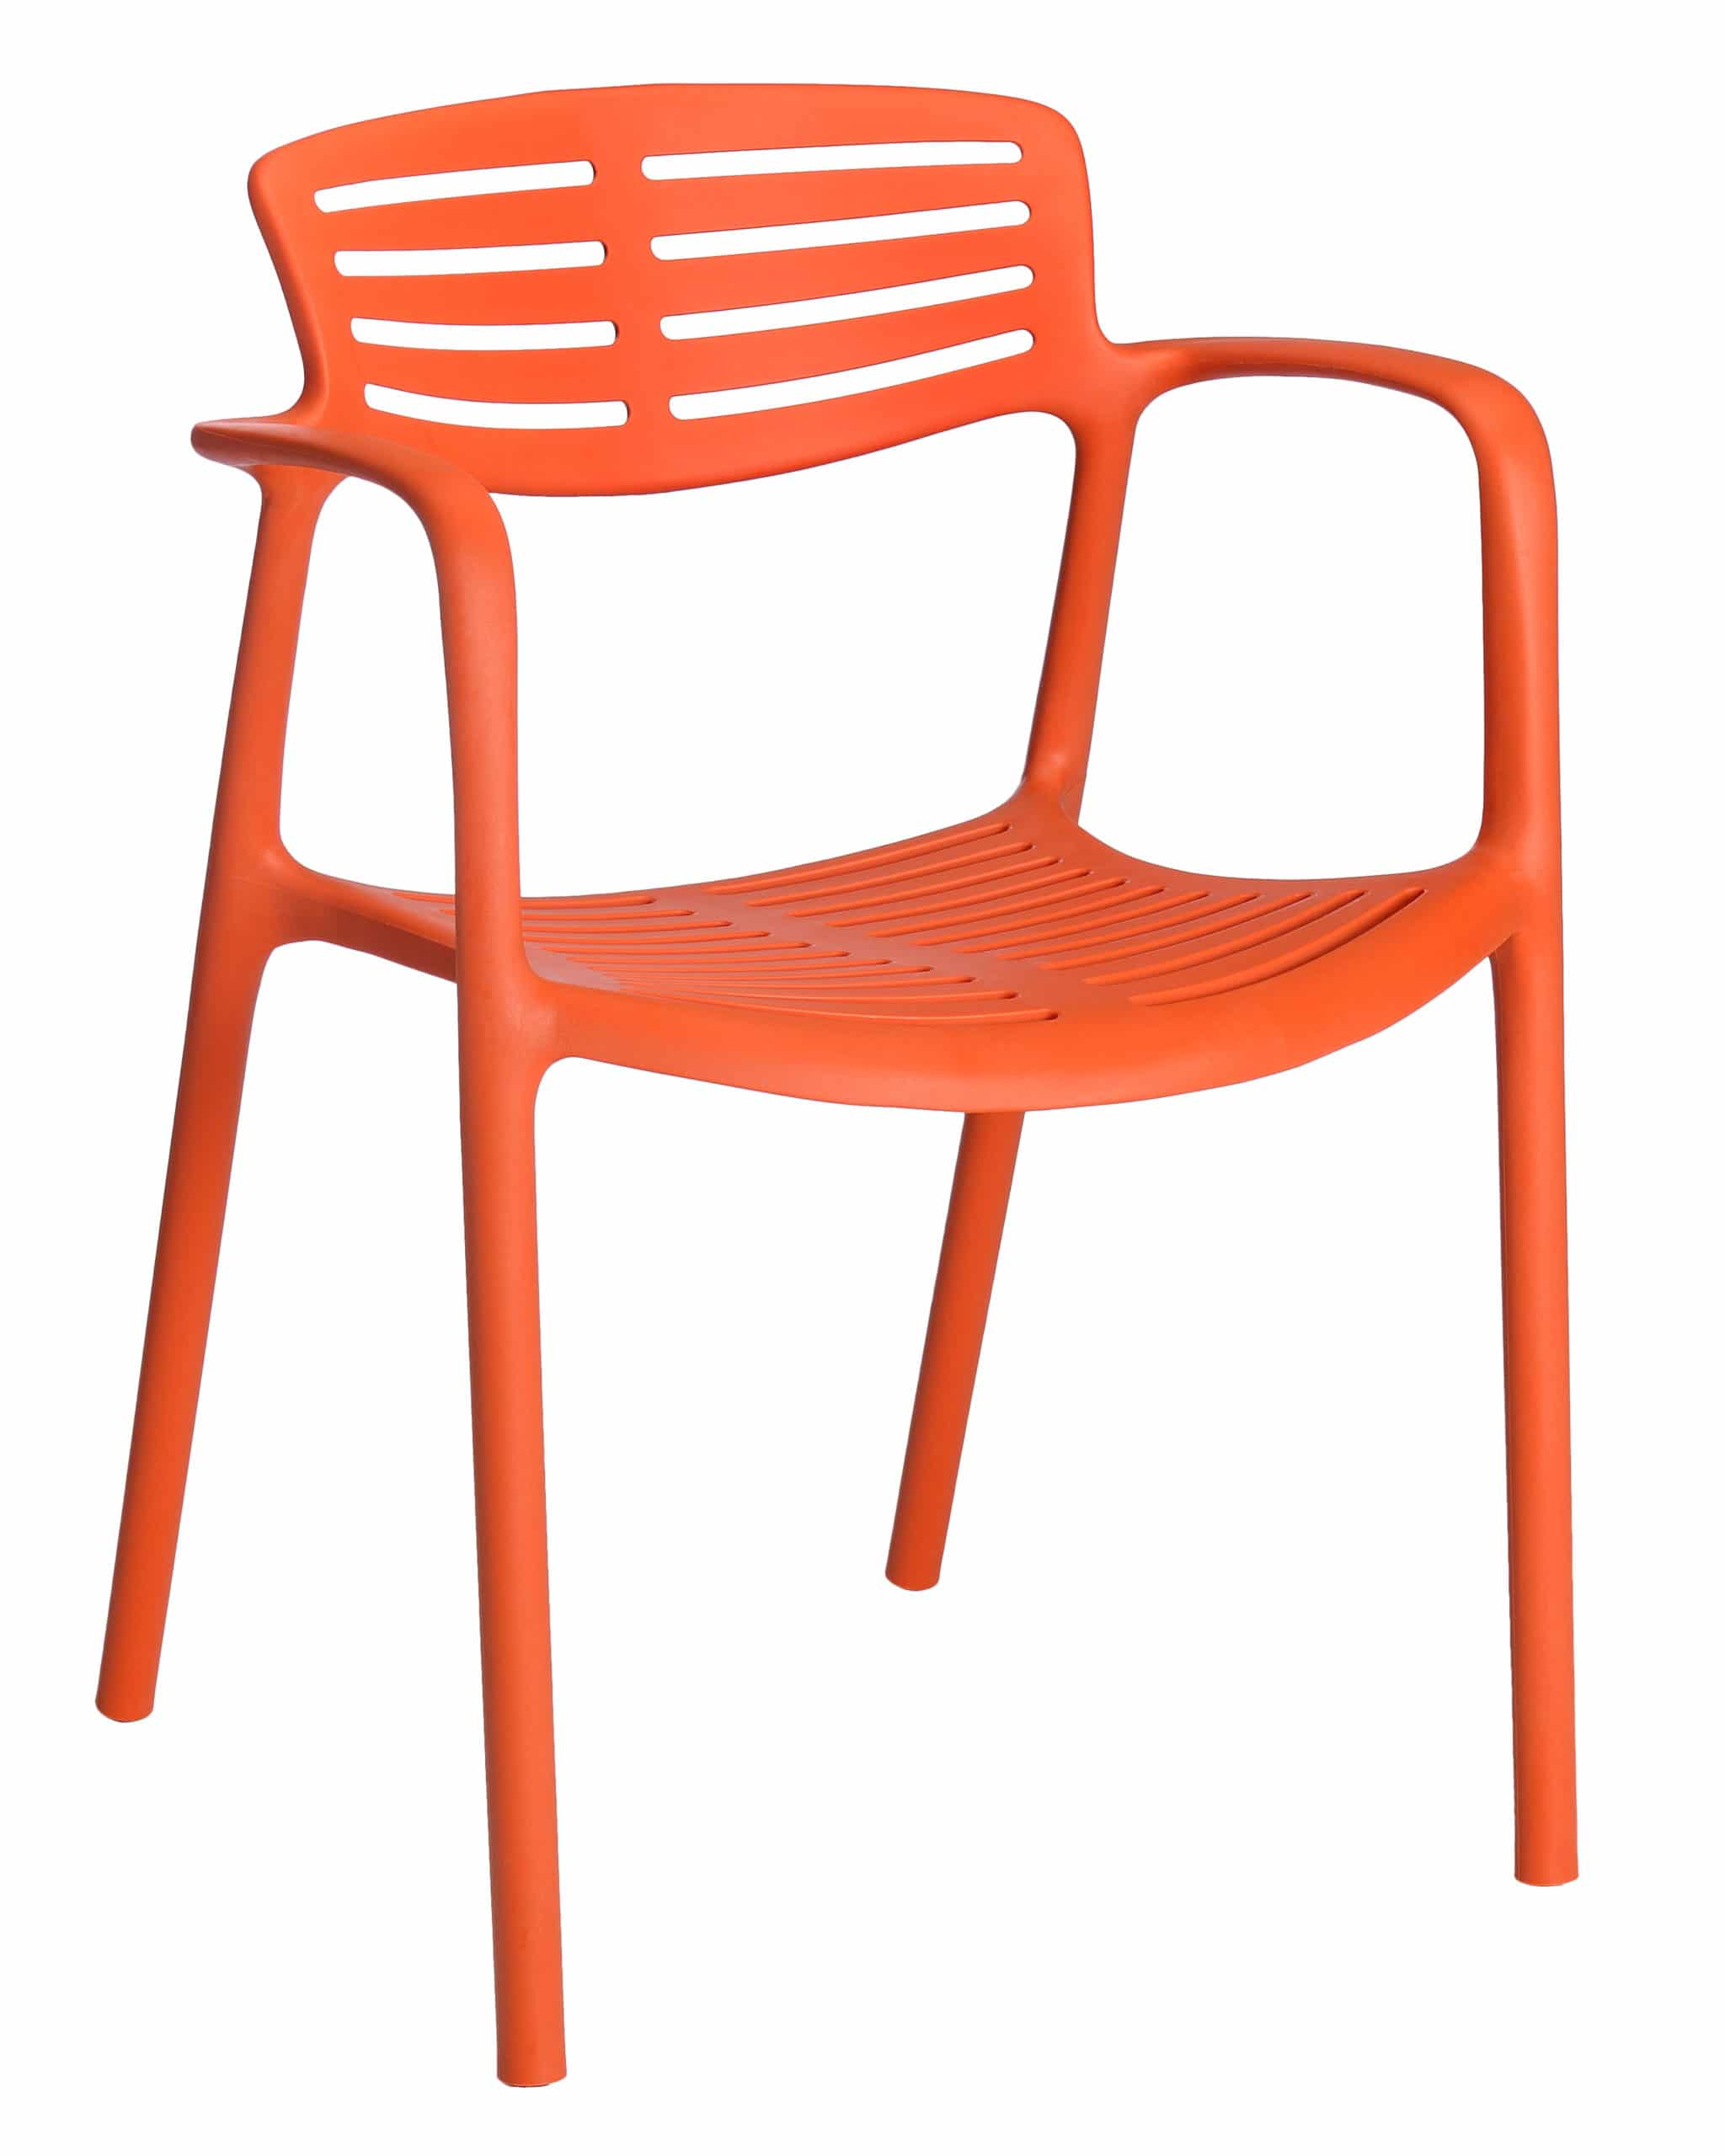 <p>Outdoor Furniture Contemporary Collection – Yuno Armchair.</p> <p> </p> <p>Chair for indoor and outdoor use available in a variety of vibrant colours, a timeless chair that looks just right in very different architectural spaces, capturing essential features such as lightness, functionality, ergonomics and care for the environment.</p>